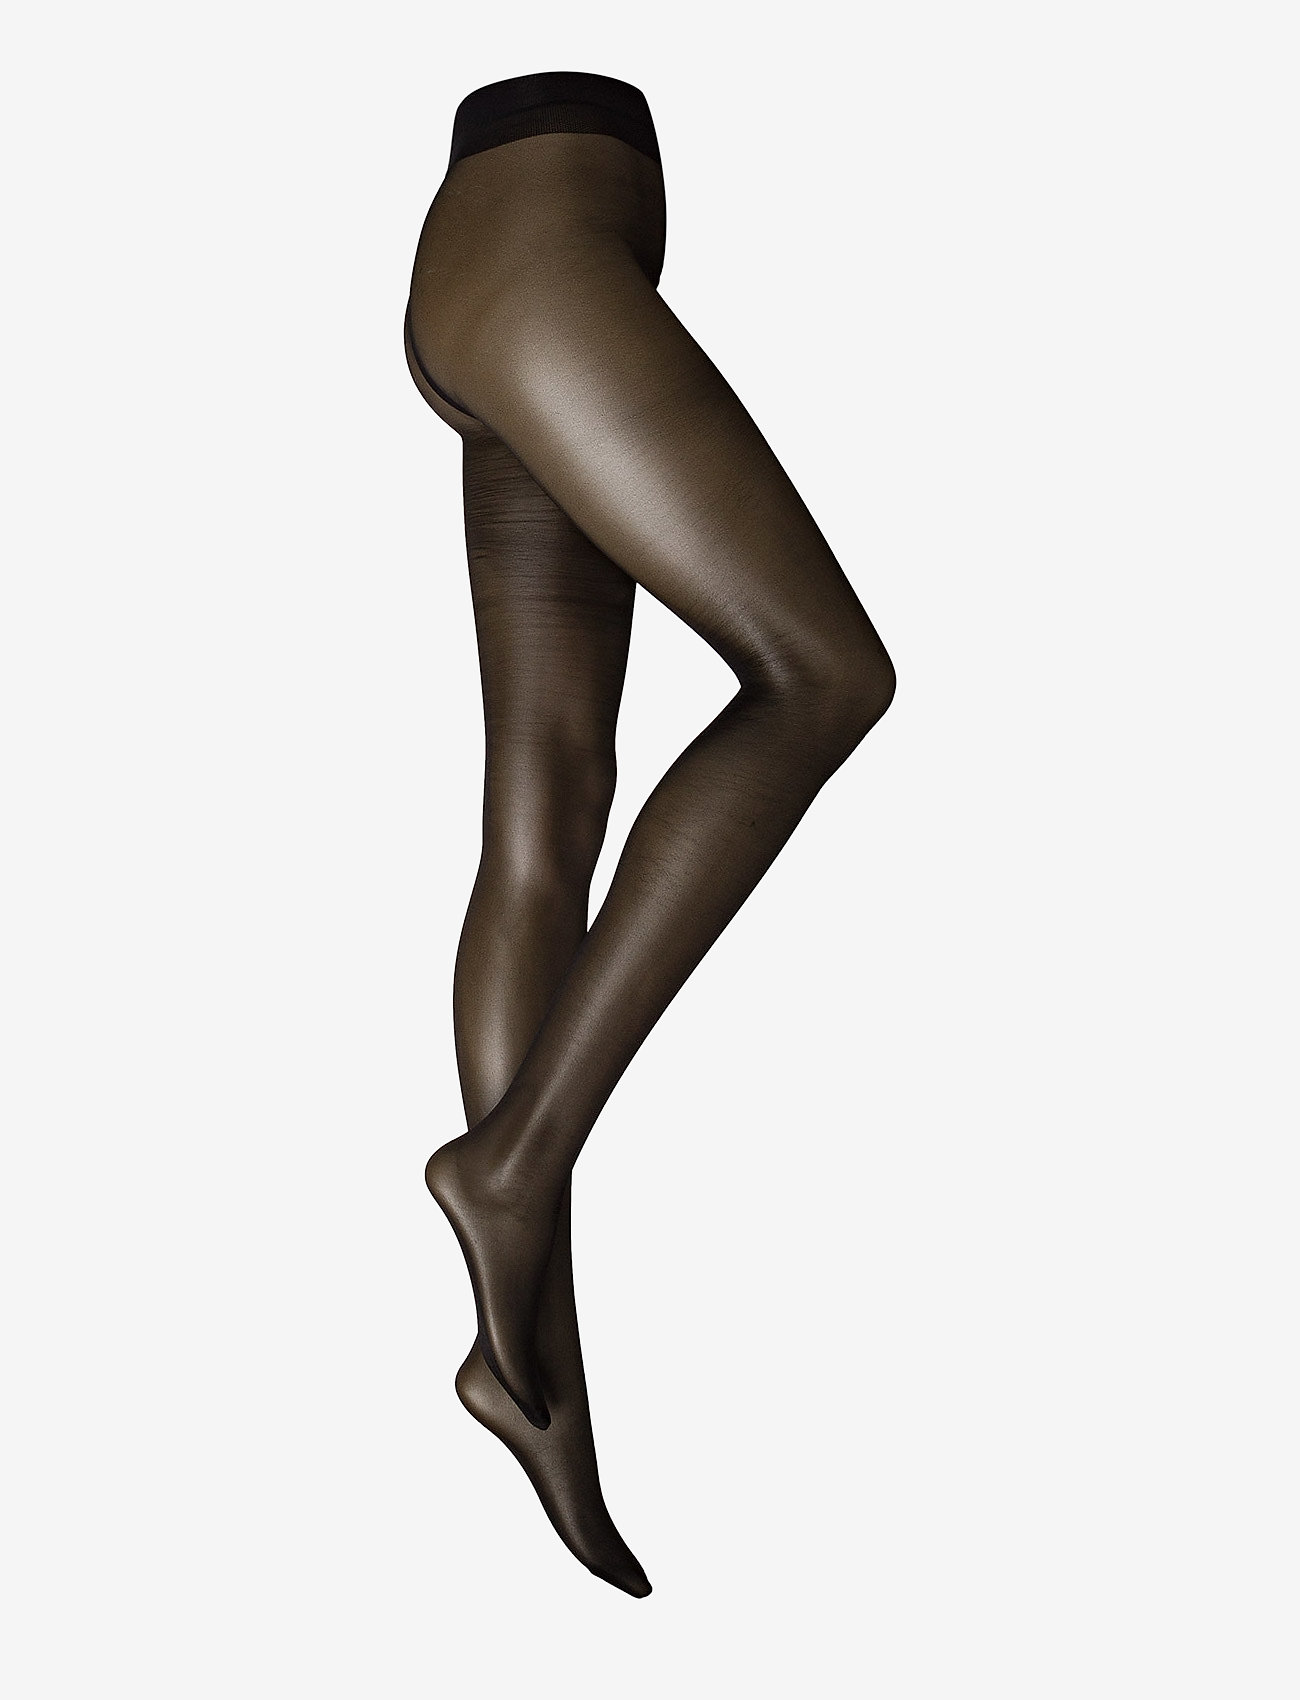 Vogue - Ladies den pantyhose, Sensual Touch 20den - basic - black - 0